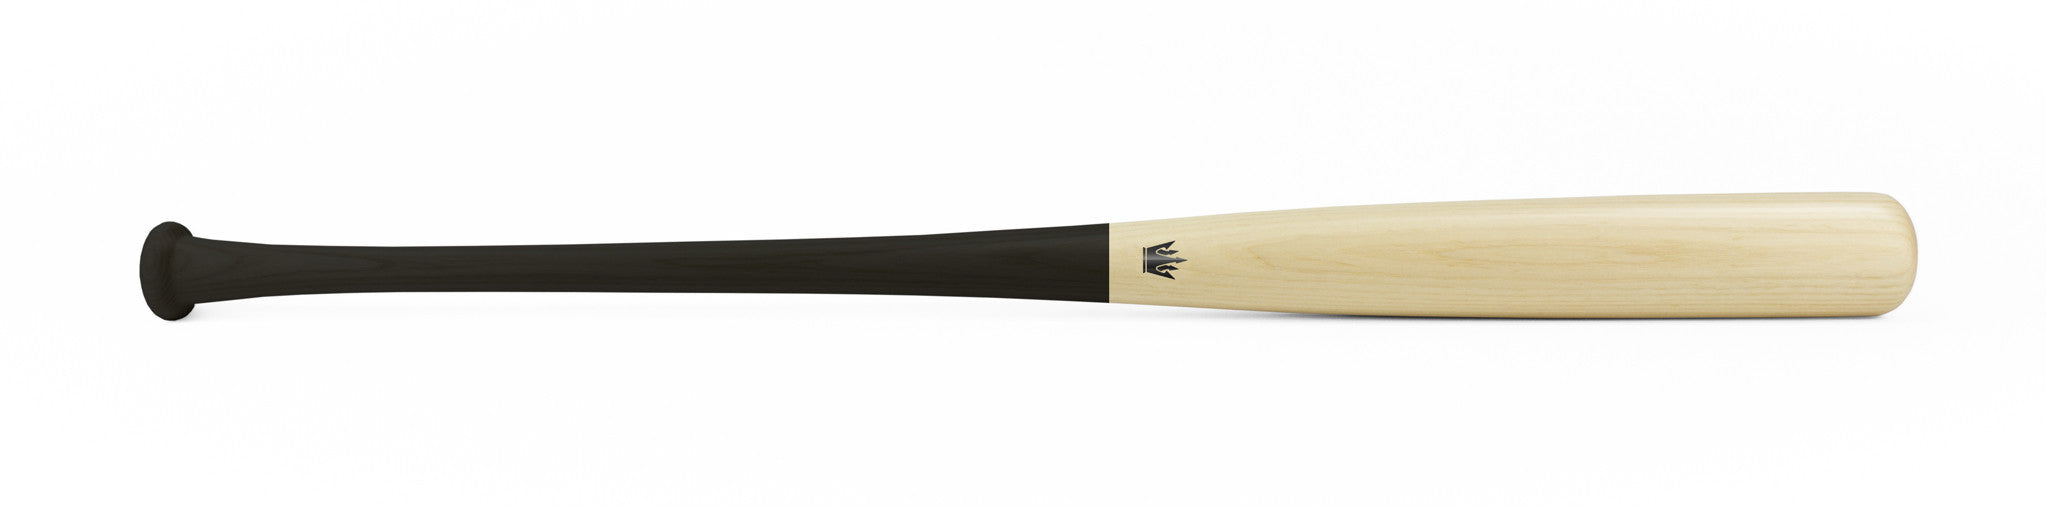 Wood bat - Ash model 141 Black Dip - 27